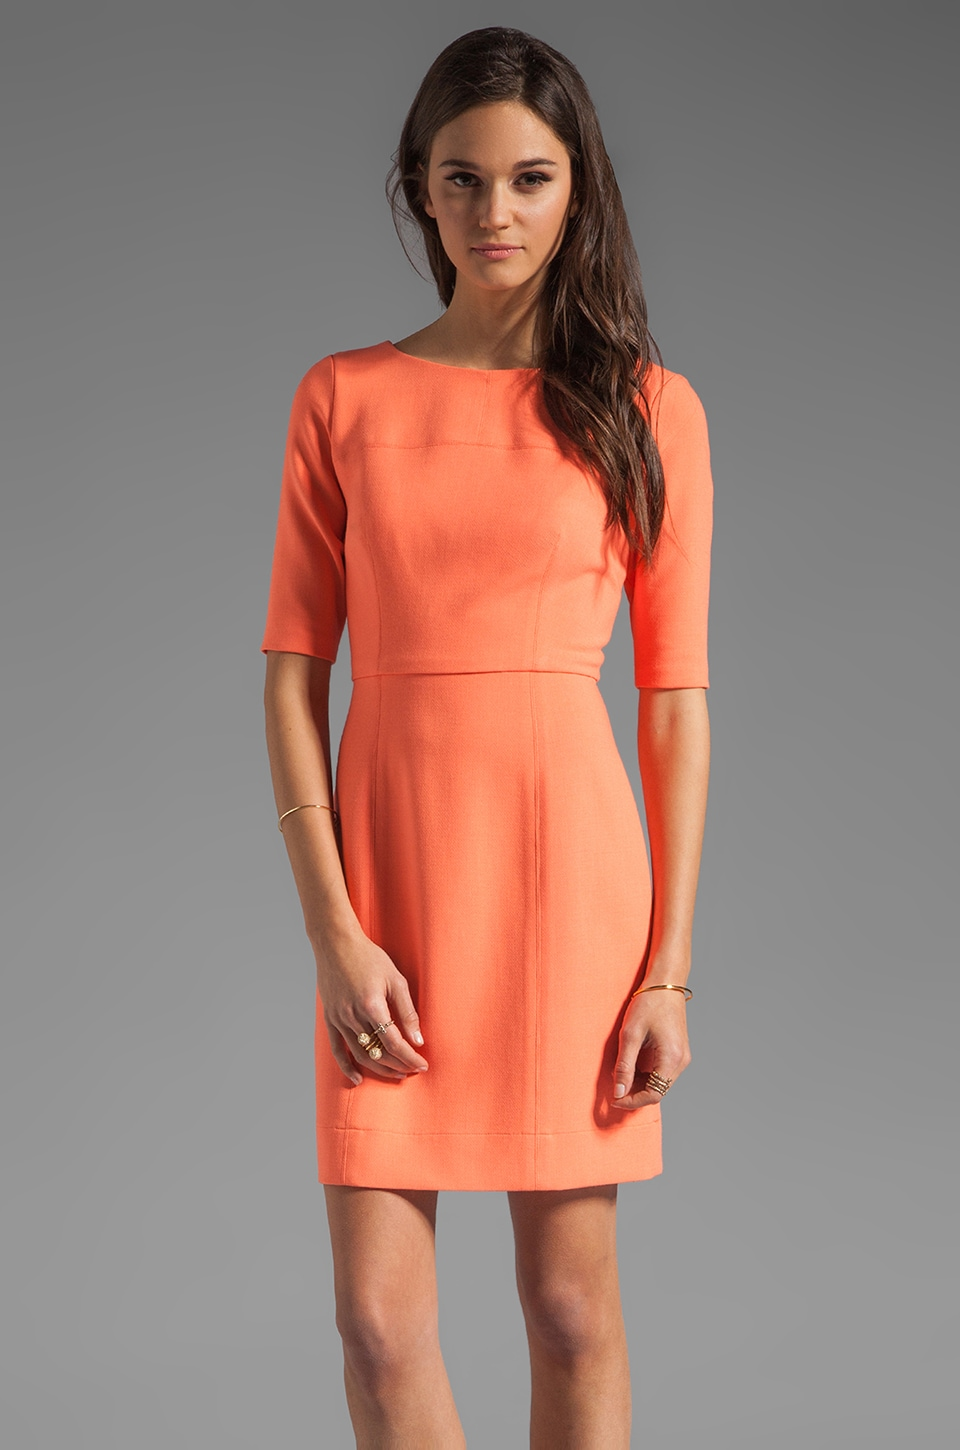 Shoshanna Delfina Dress in Neon Coral